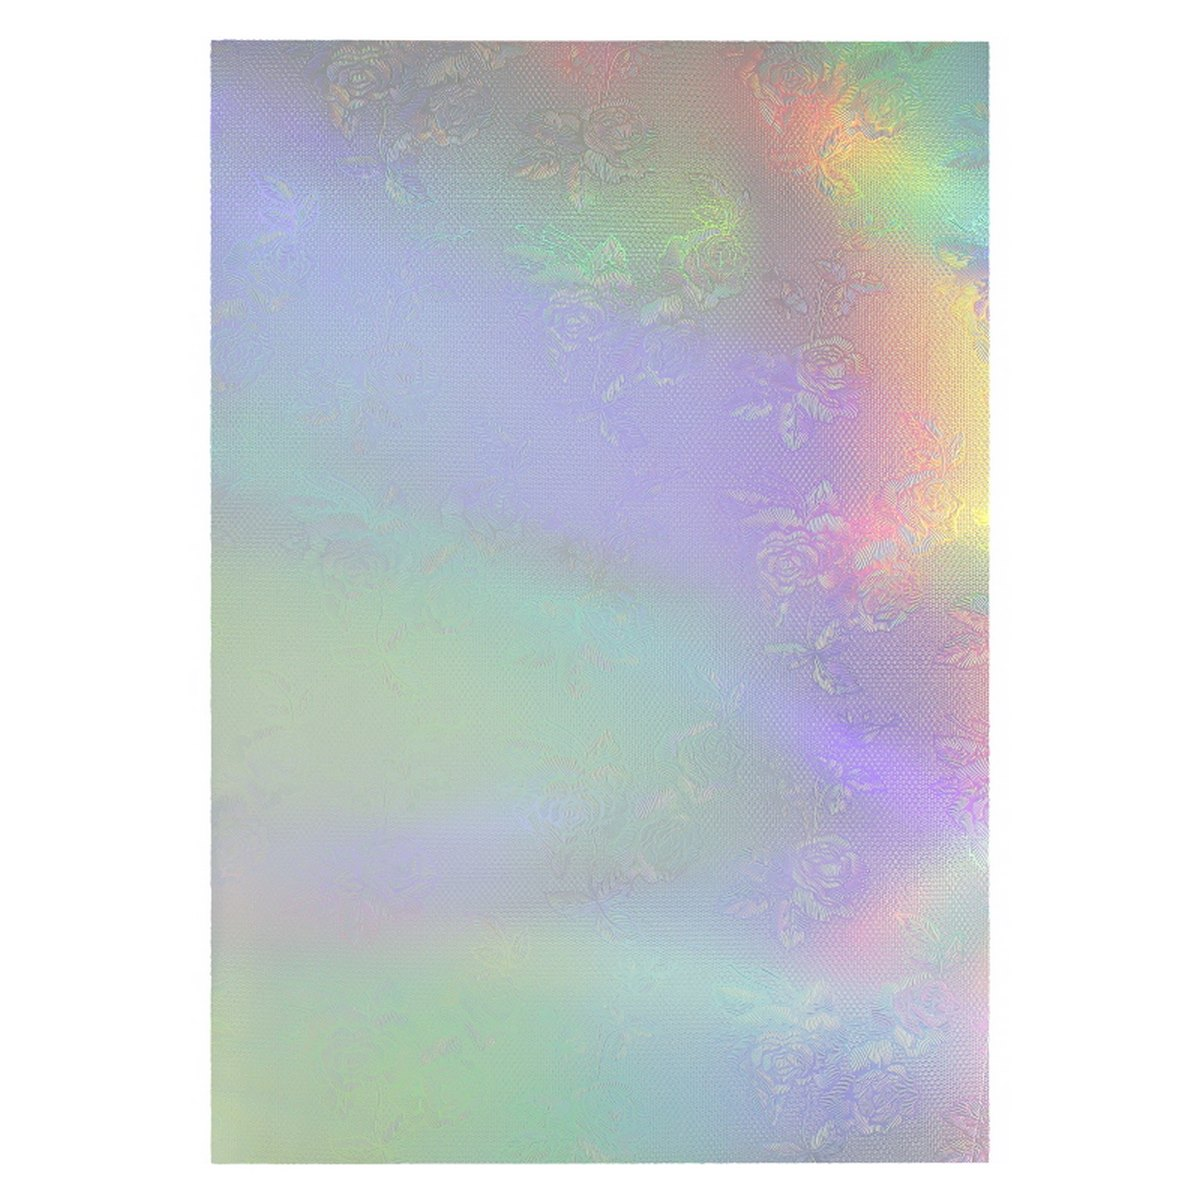 Metallic Paper A4 Holographic Daisy 340gsm (CPMA4H-05)